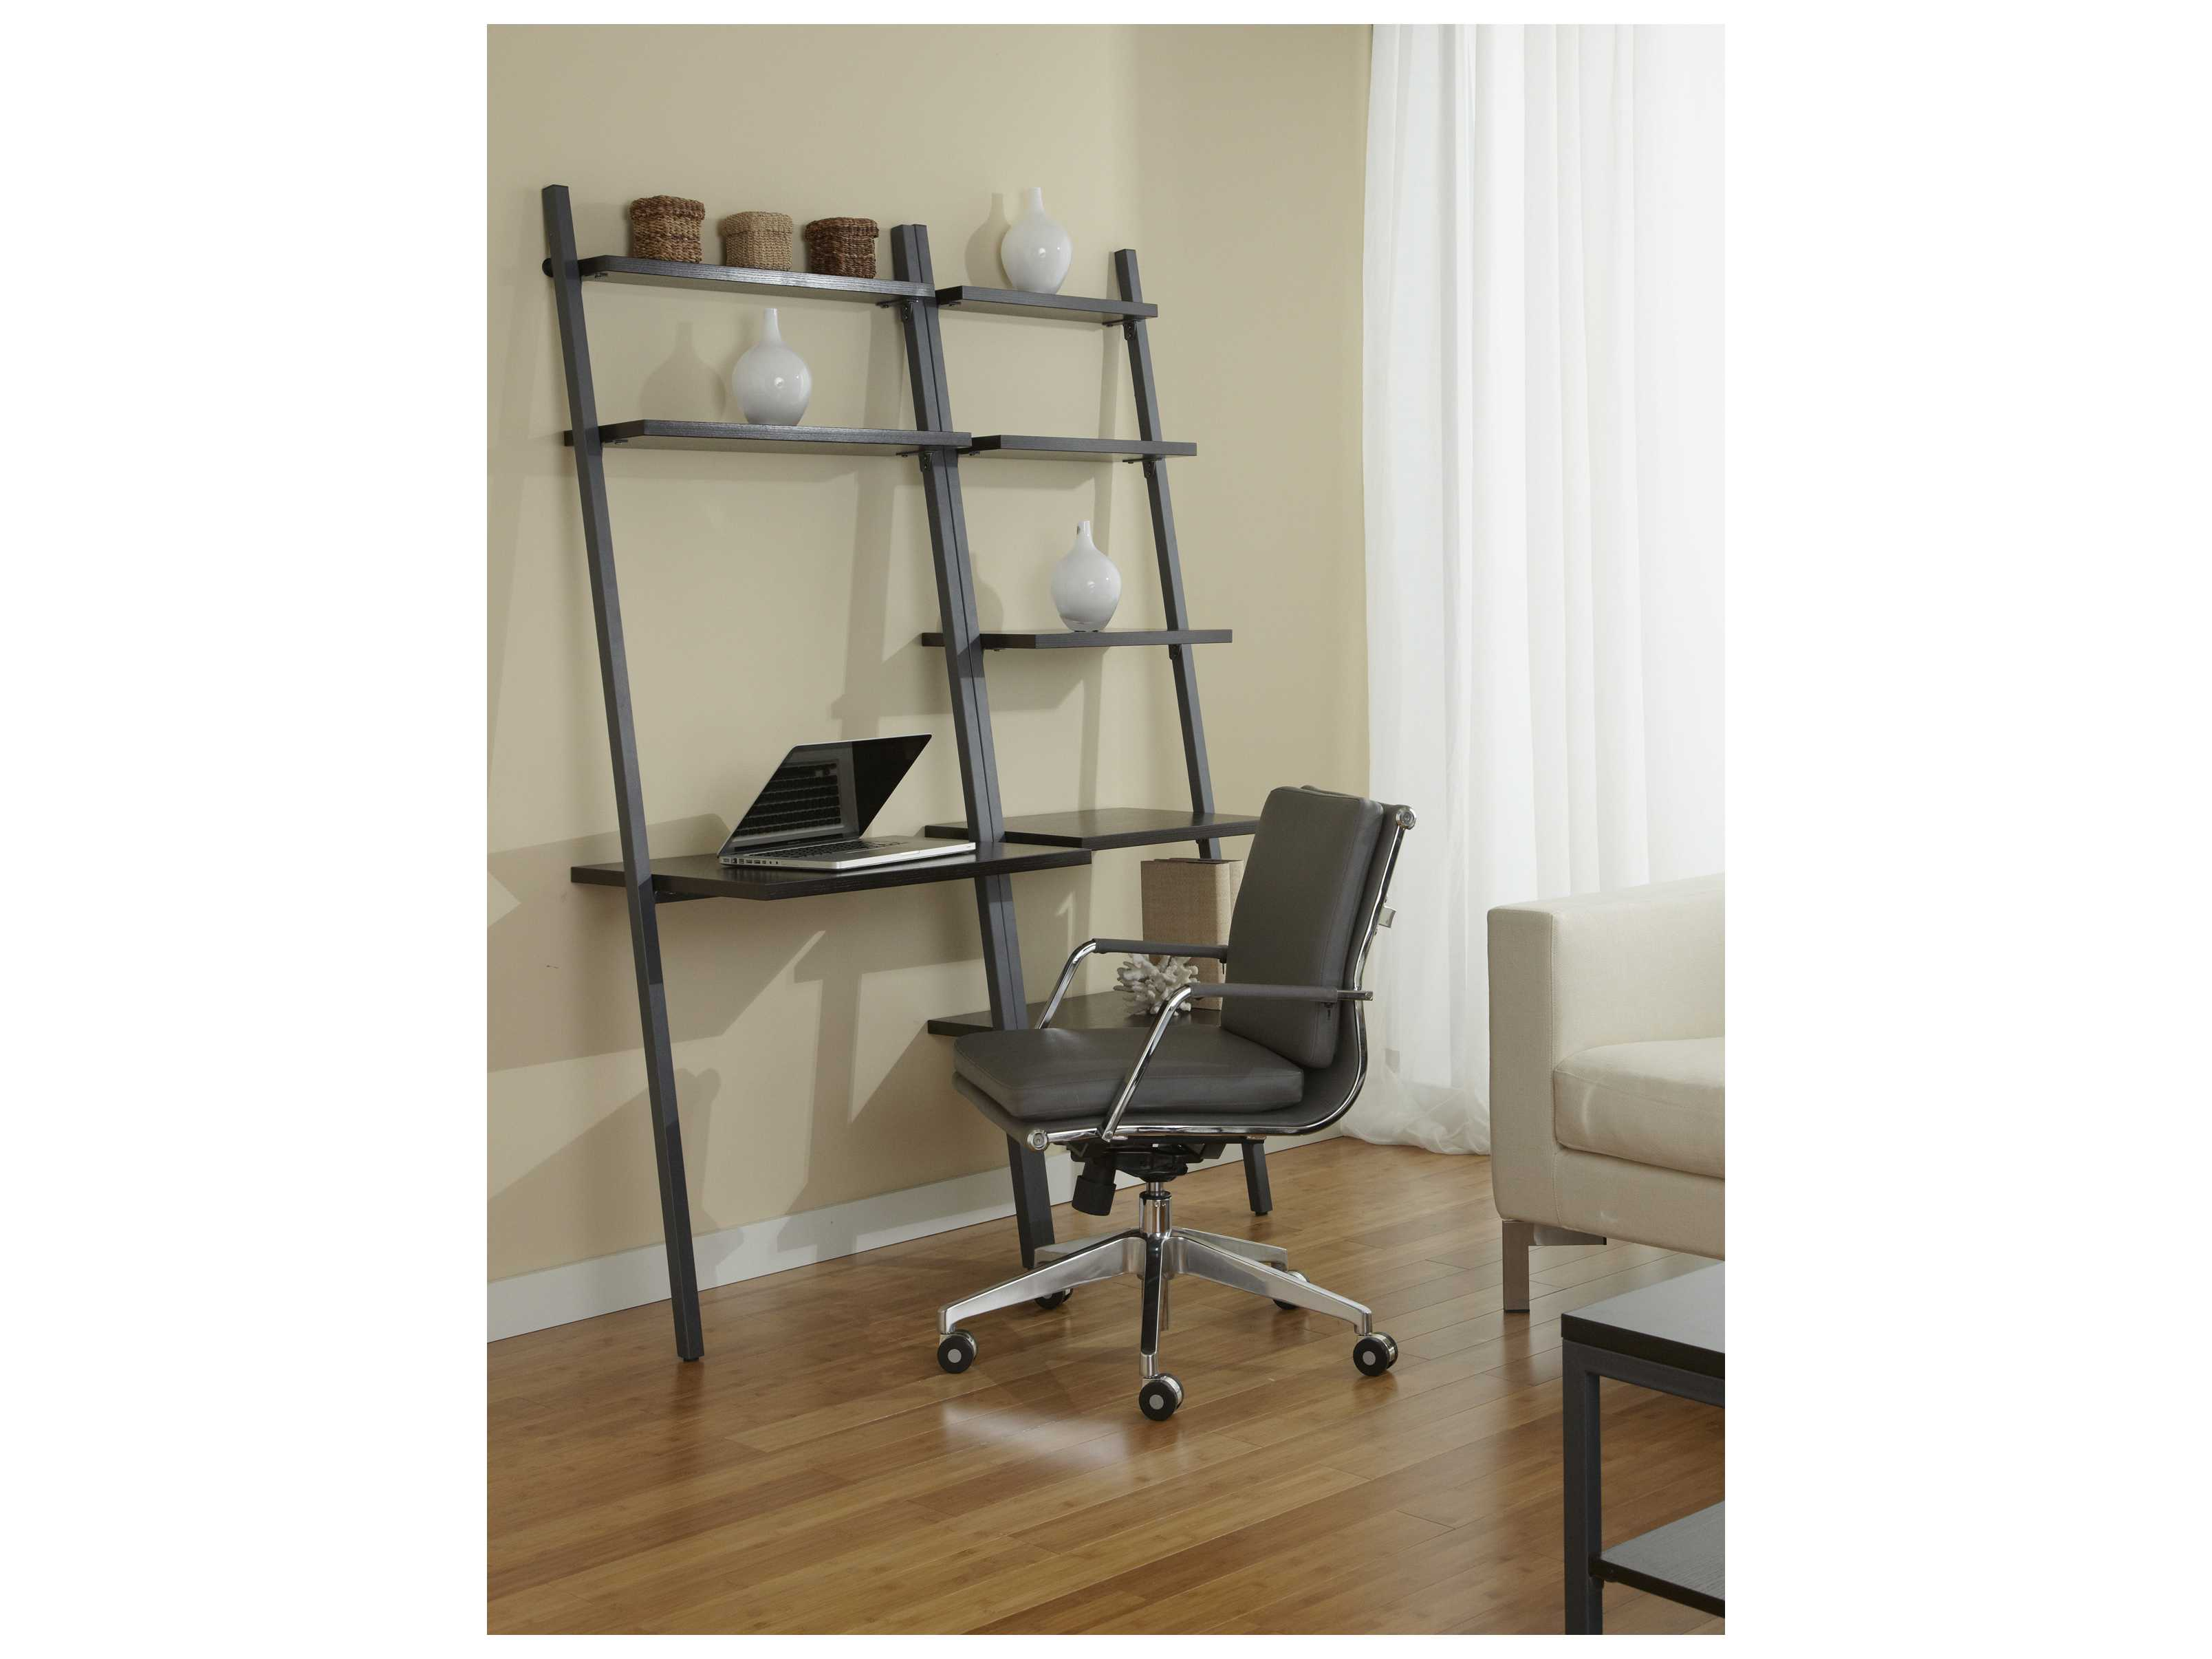 Jesper office 100 parson 52 39 39 x 29 39 39 rectangular espresso desk with ladder bookcase b3071d - Jesper office desk ...